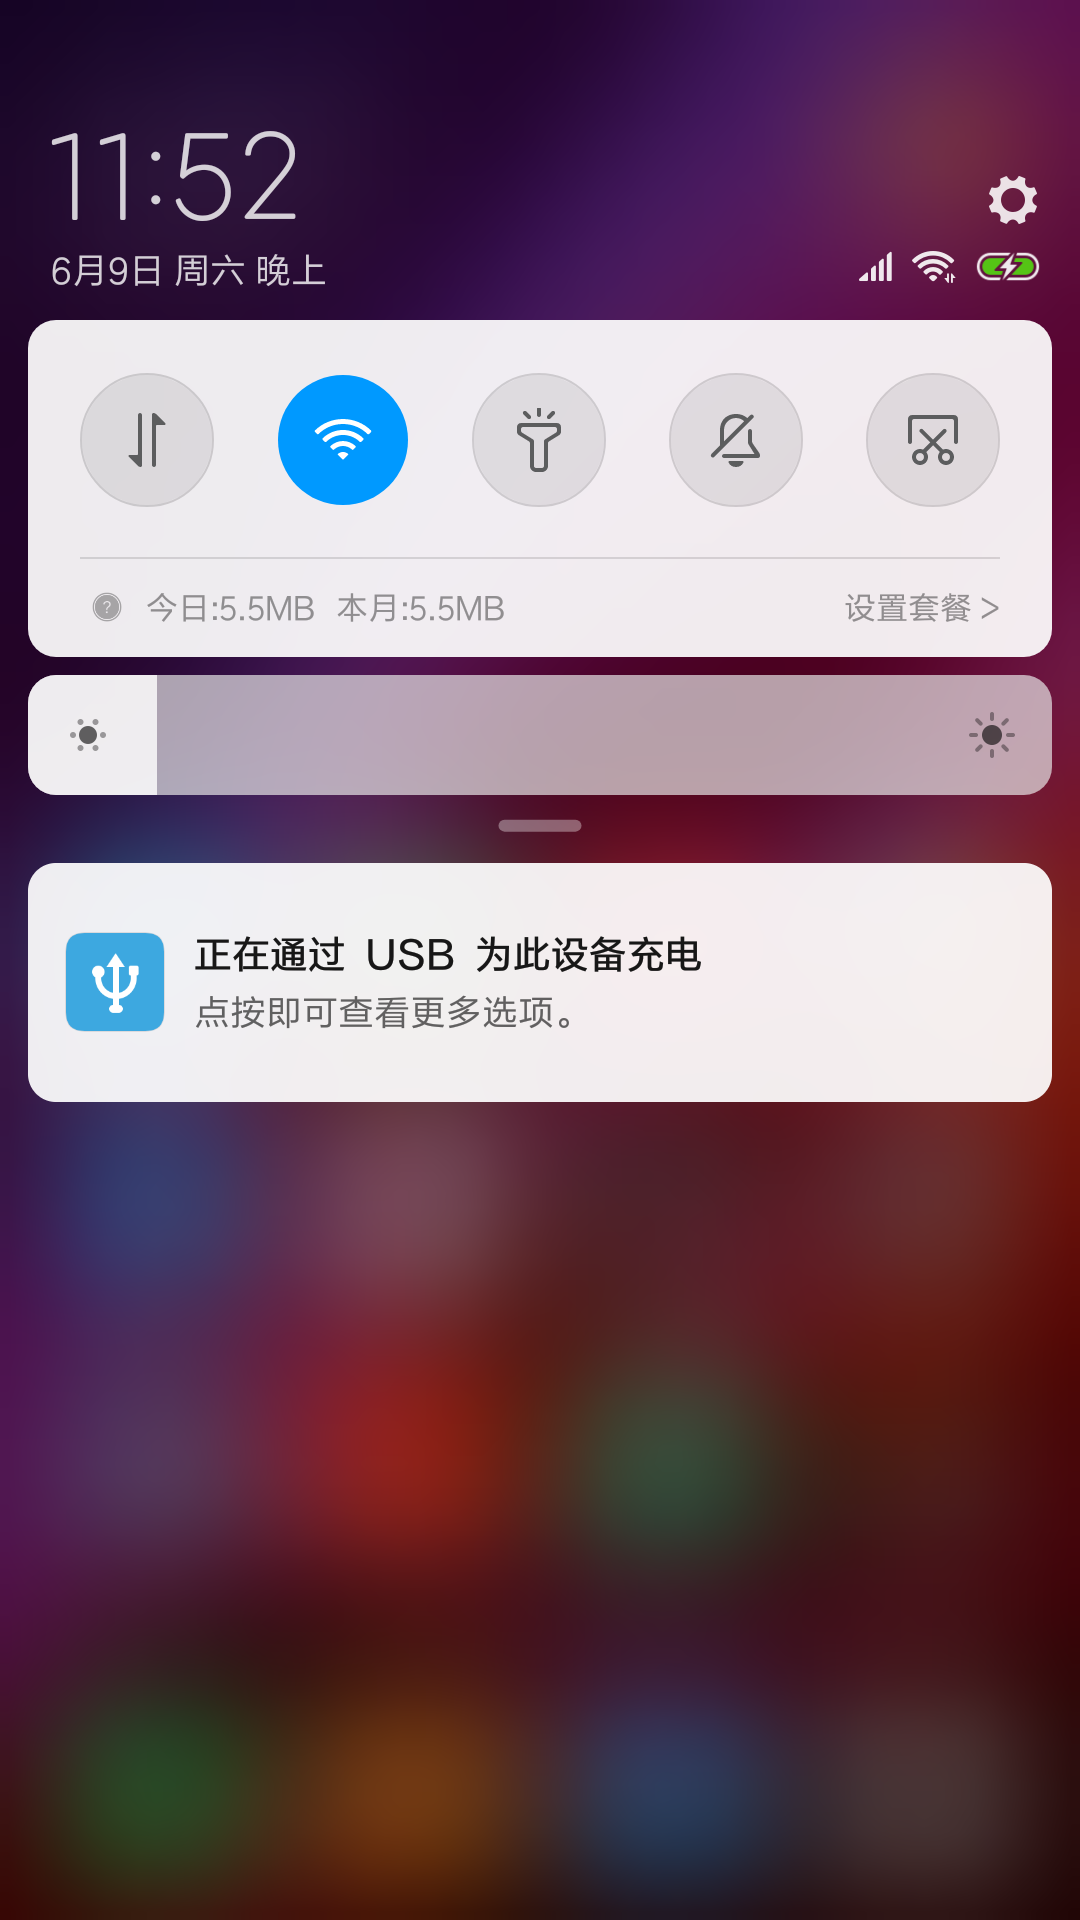 Screenshot_2018-06-09-23-52-14-813_com.miui.home.png